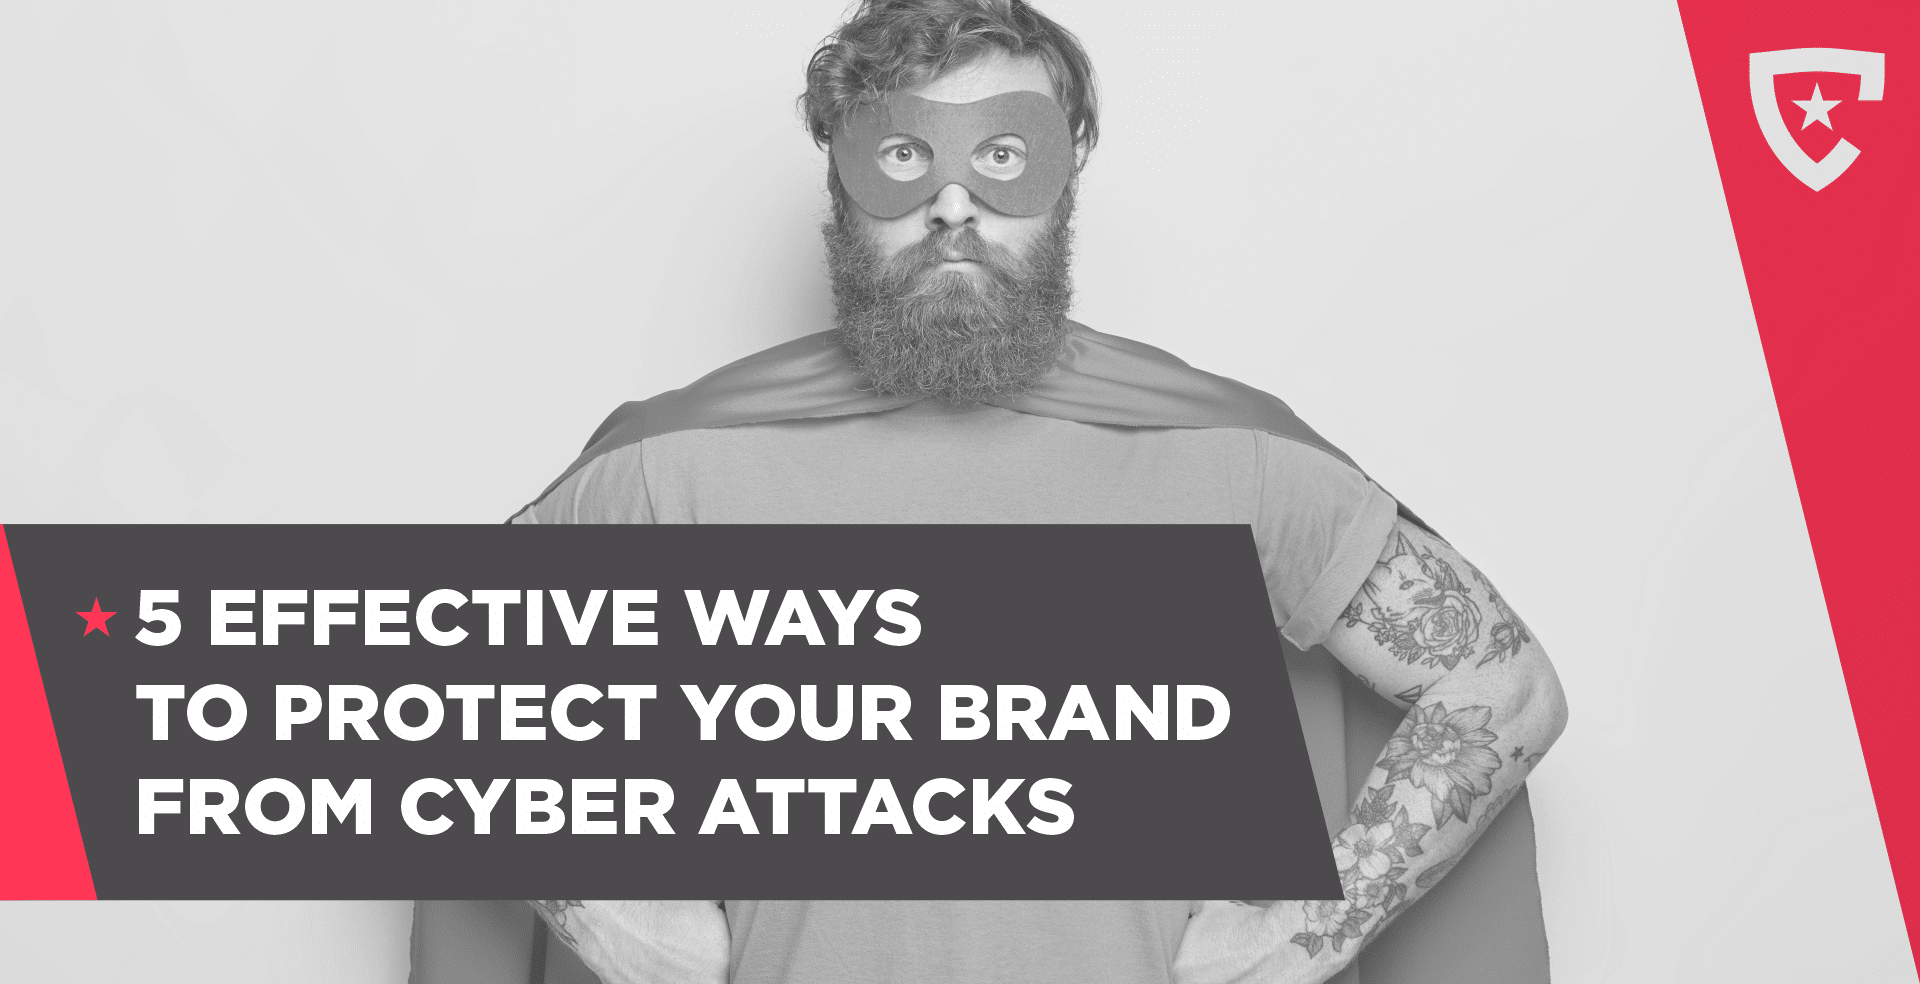 5 Effective Ways to Protect Your Brand from Cyber Attacks